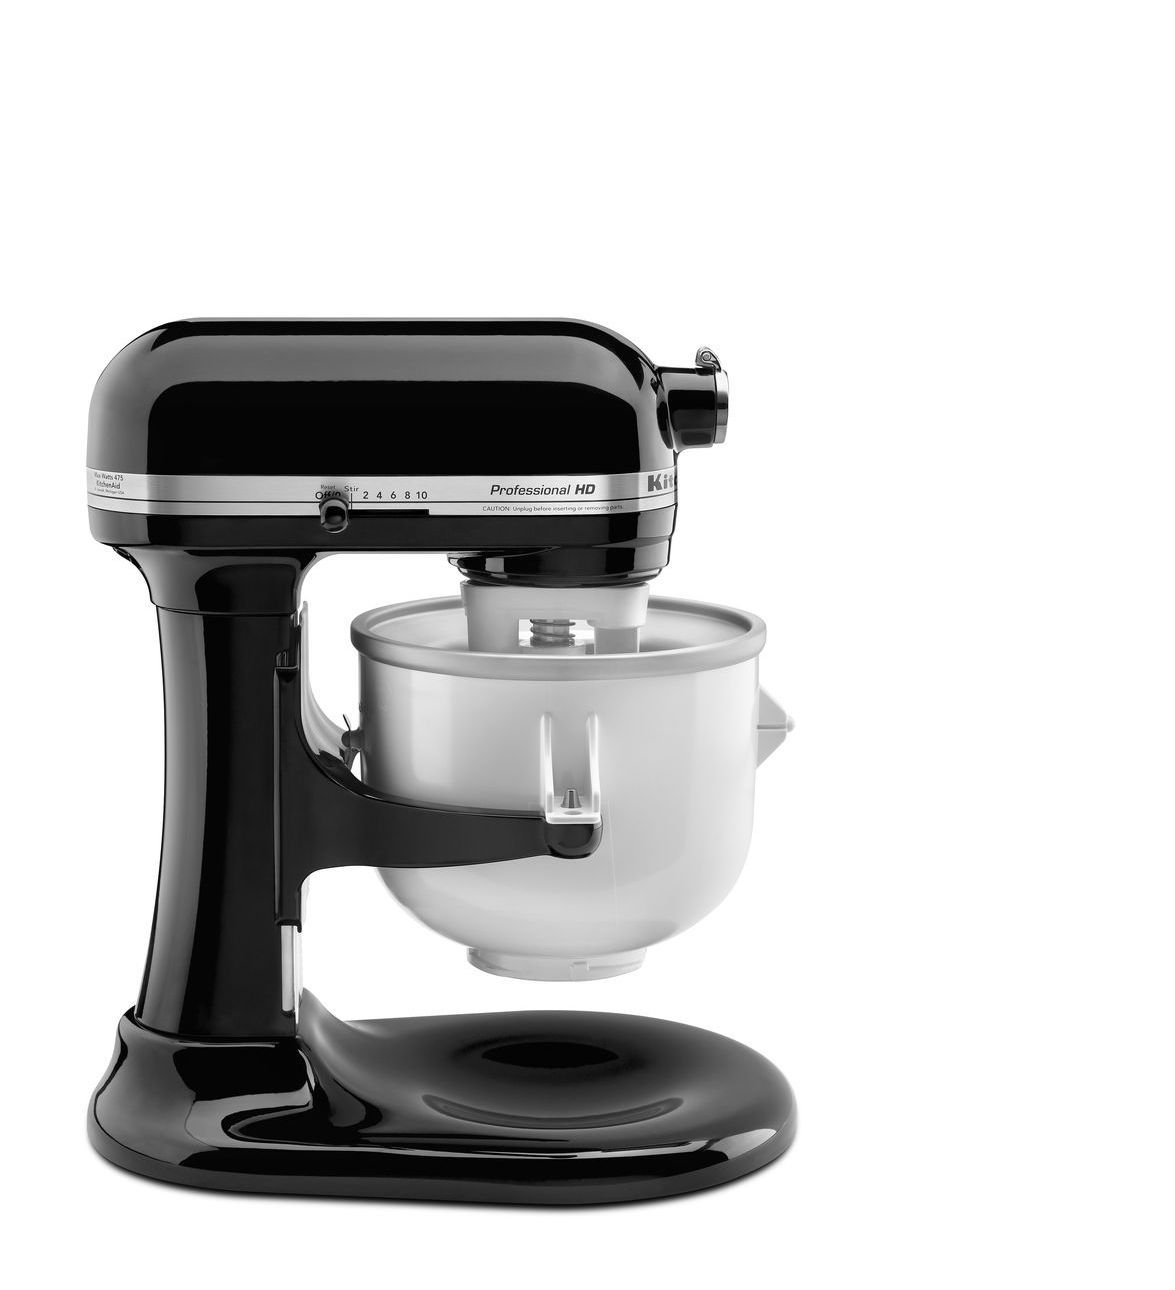 Kitchenaid ice cream maker attachment with images